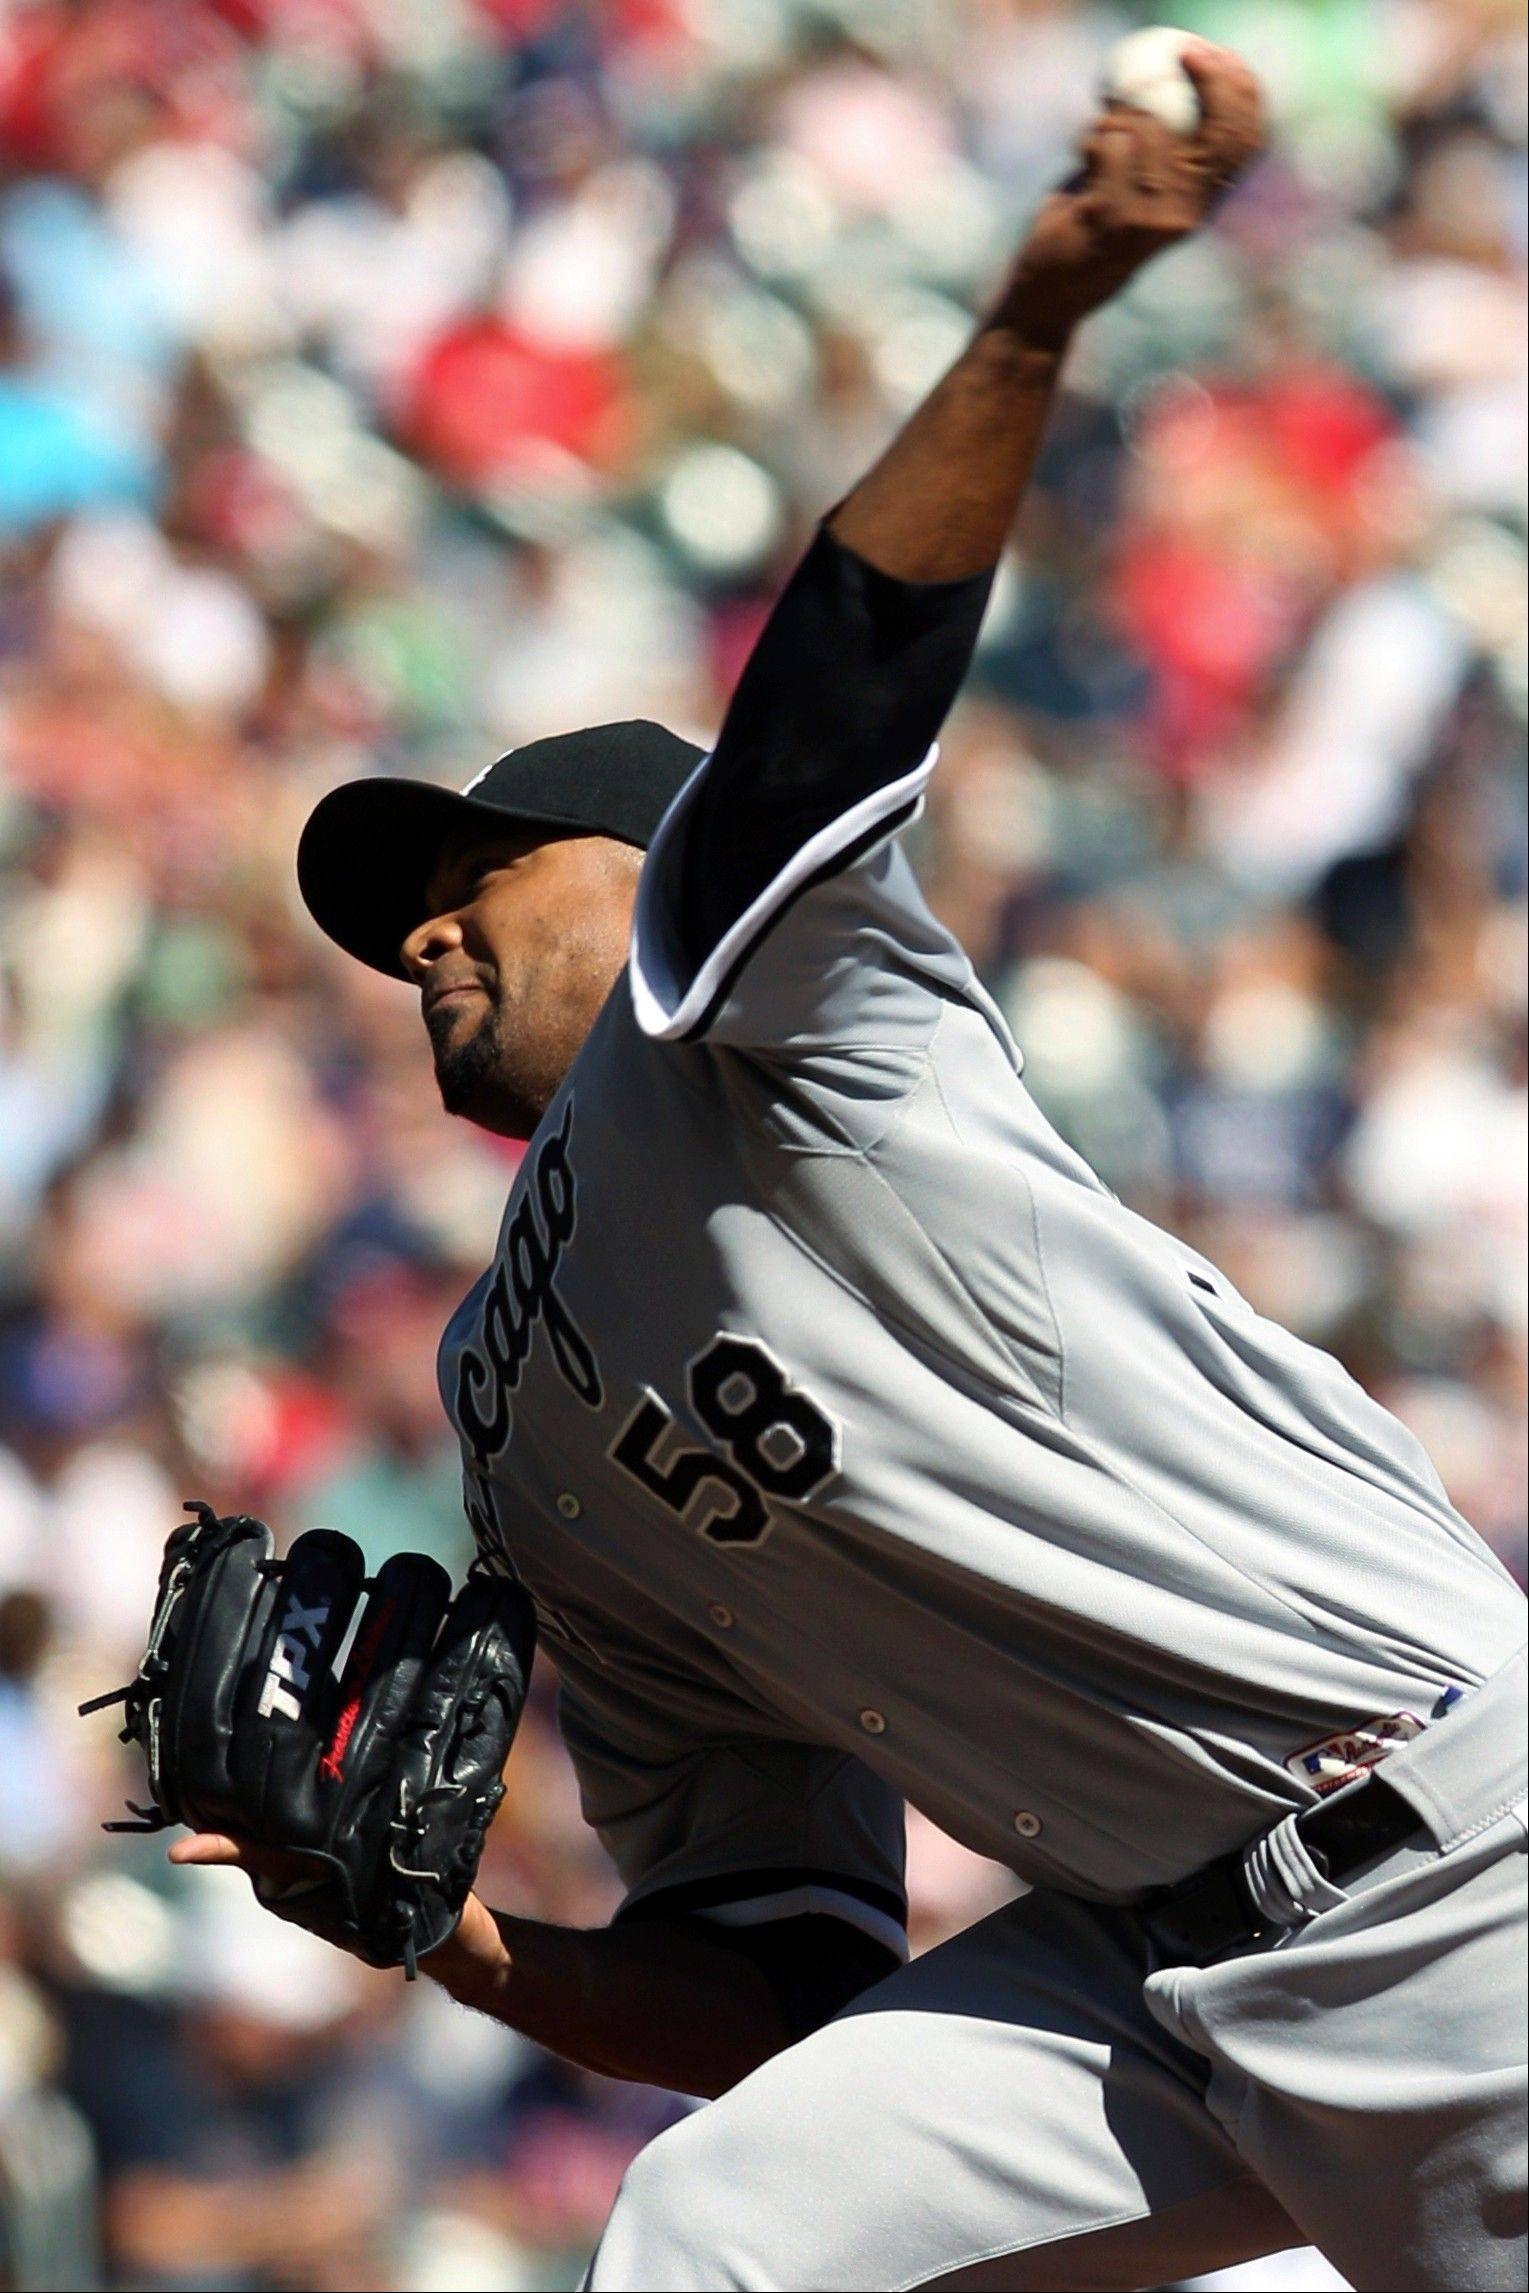 Francisco Liriano took a no-hitter into the seventh inning, Paul Konerko homered and drove in three runs Saturday, and the White Sox stayed on top of the AL Central with a 5-3 victory over the Minnesota Twins.